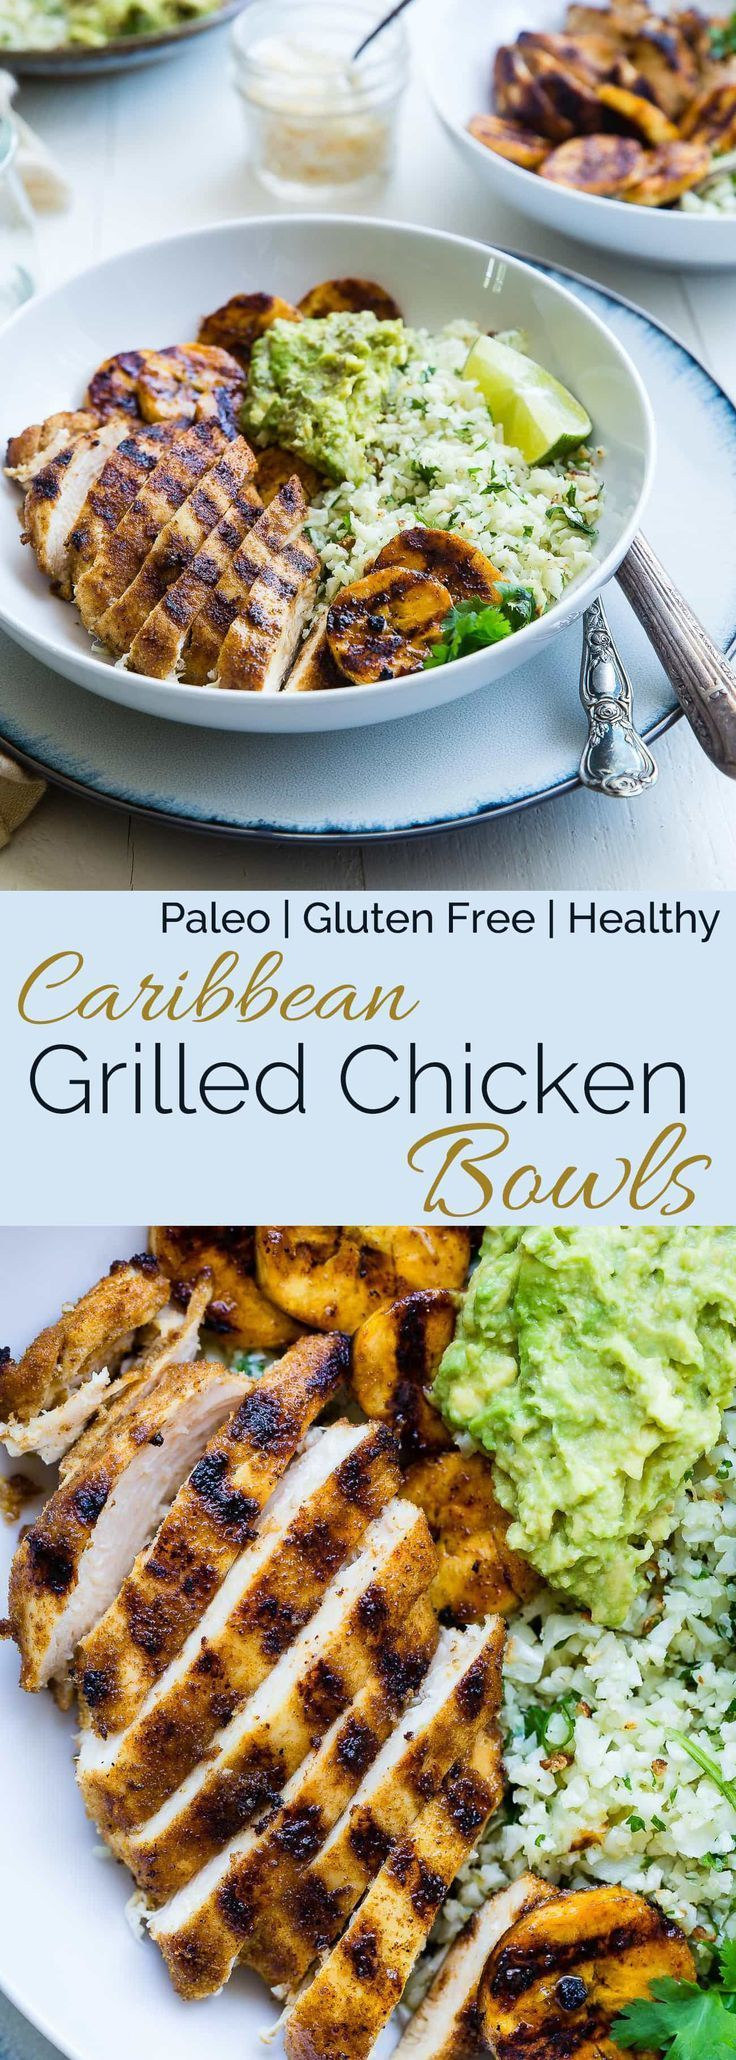 Chicken Bowls - These paleo-friendly bowls have grilled plantains, cauliflower rice and avocado! A healthy, gluten free summer meal for under 500 calories! |  | @FoodFaithFit via @FoodFaithFit